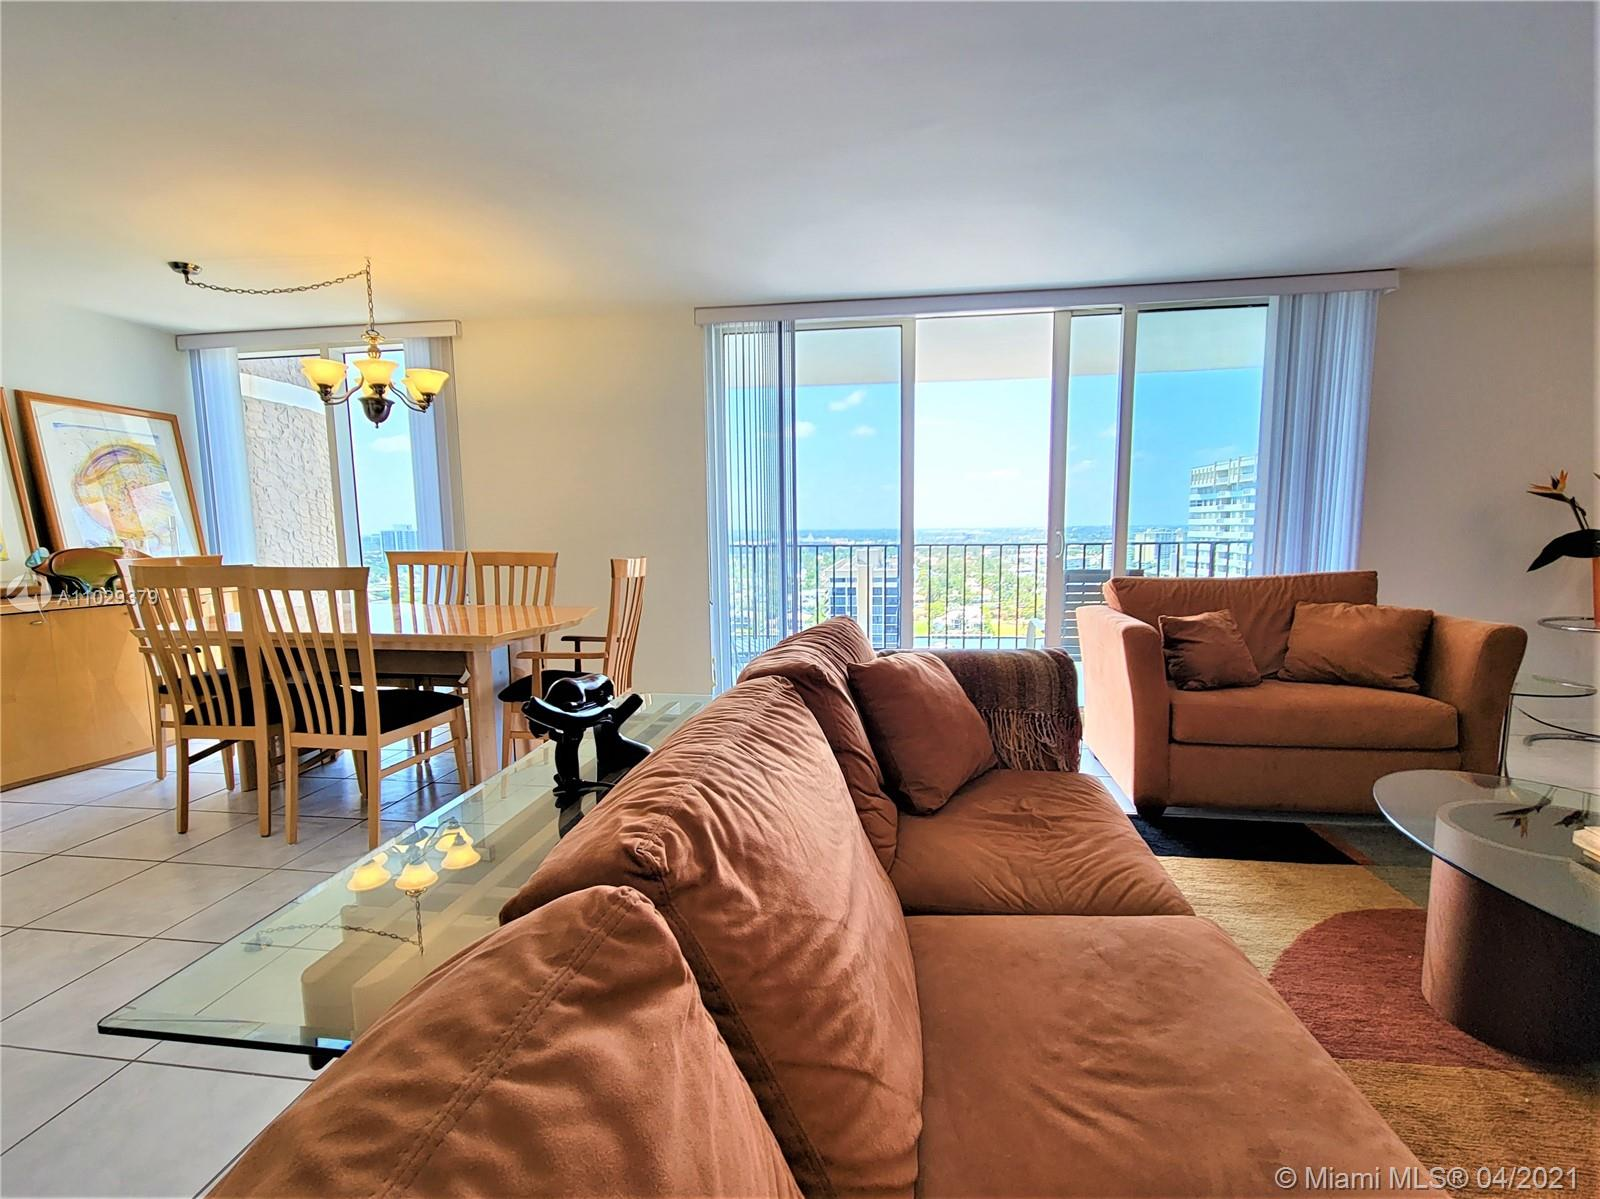 Photo of 2030 Ocean Dr #2026, Hallandale Beach, Florida, 33009 - Floor to Ceiling Picture Window In The Dinng Room For Optimal Views, and Natural Light